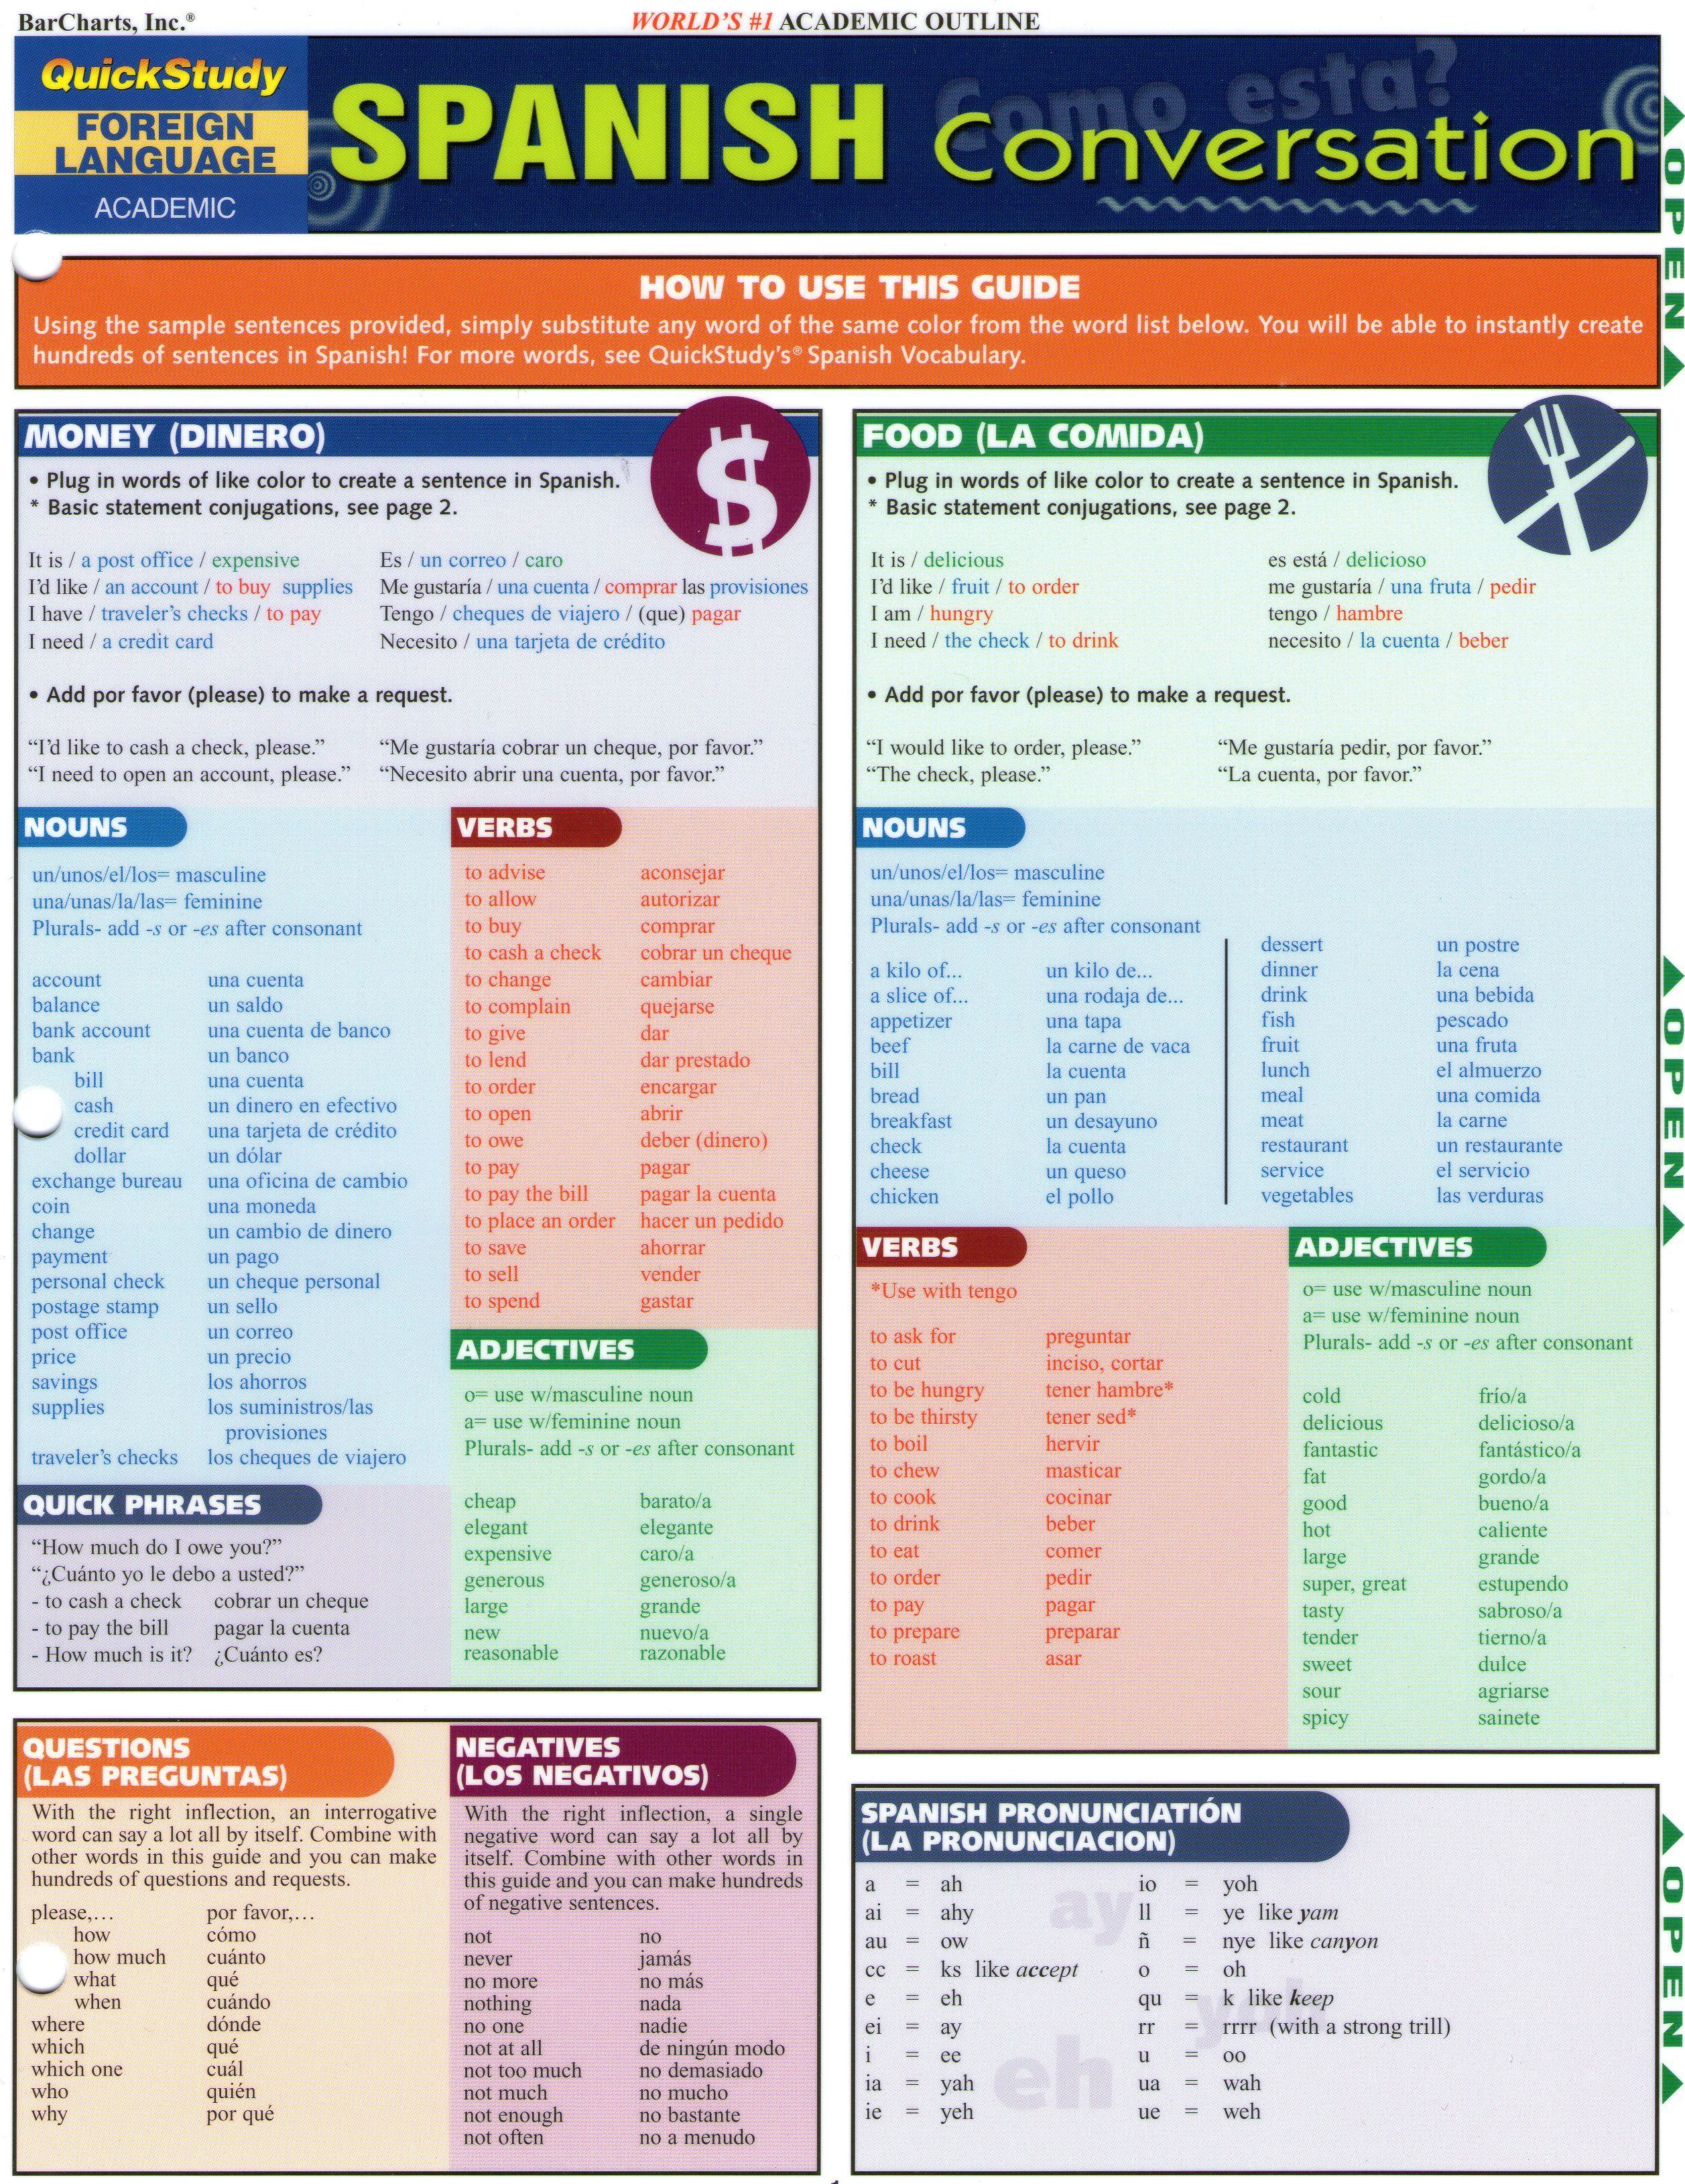 This Is A Simple Quick Reference Guide That Students Can